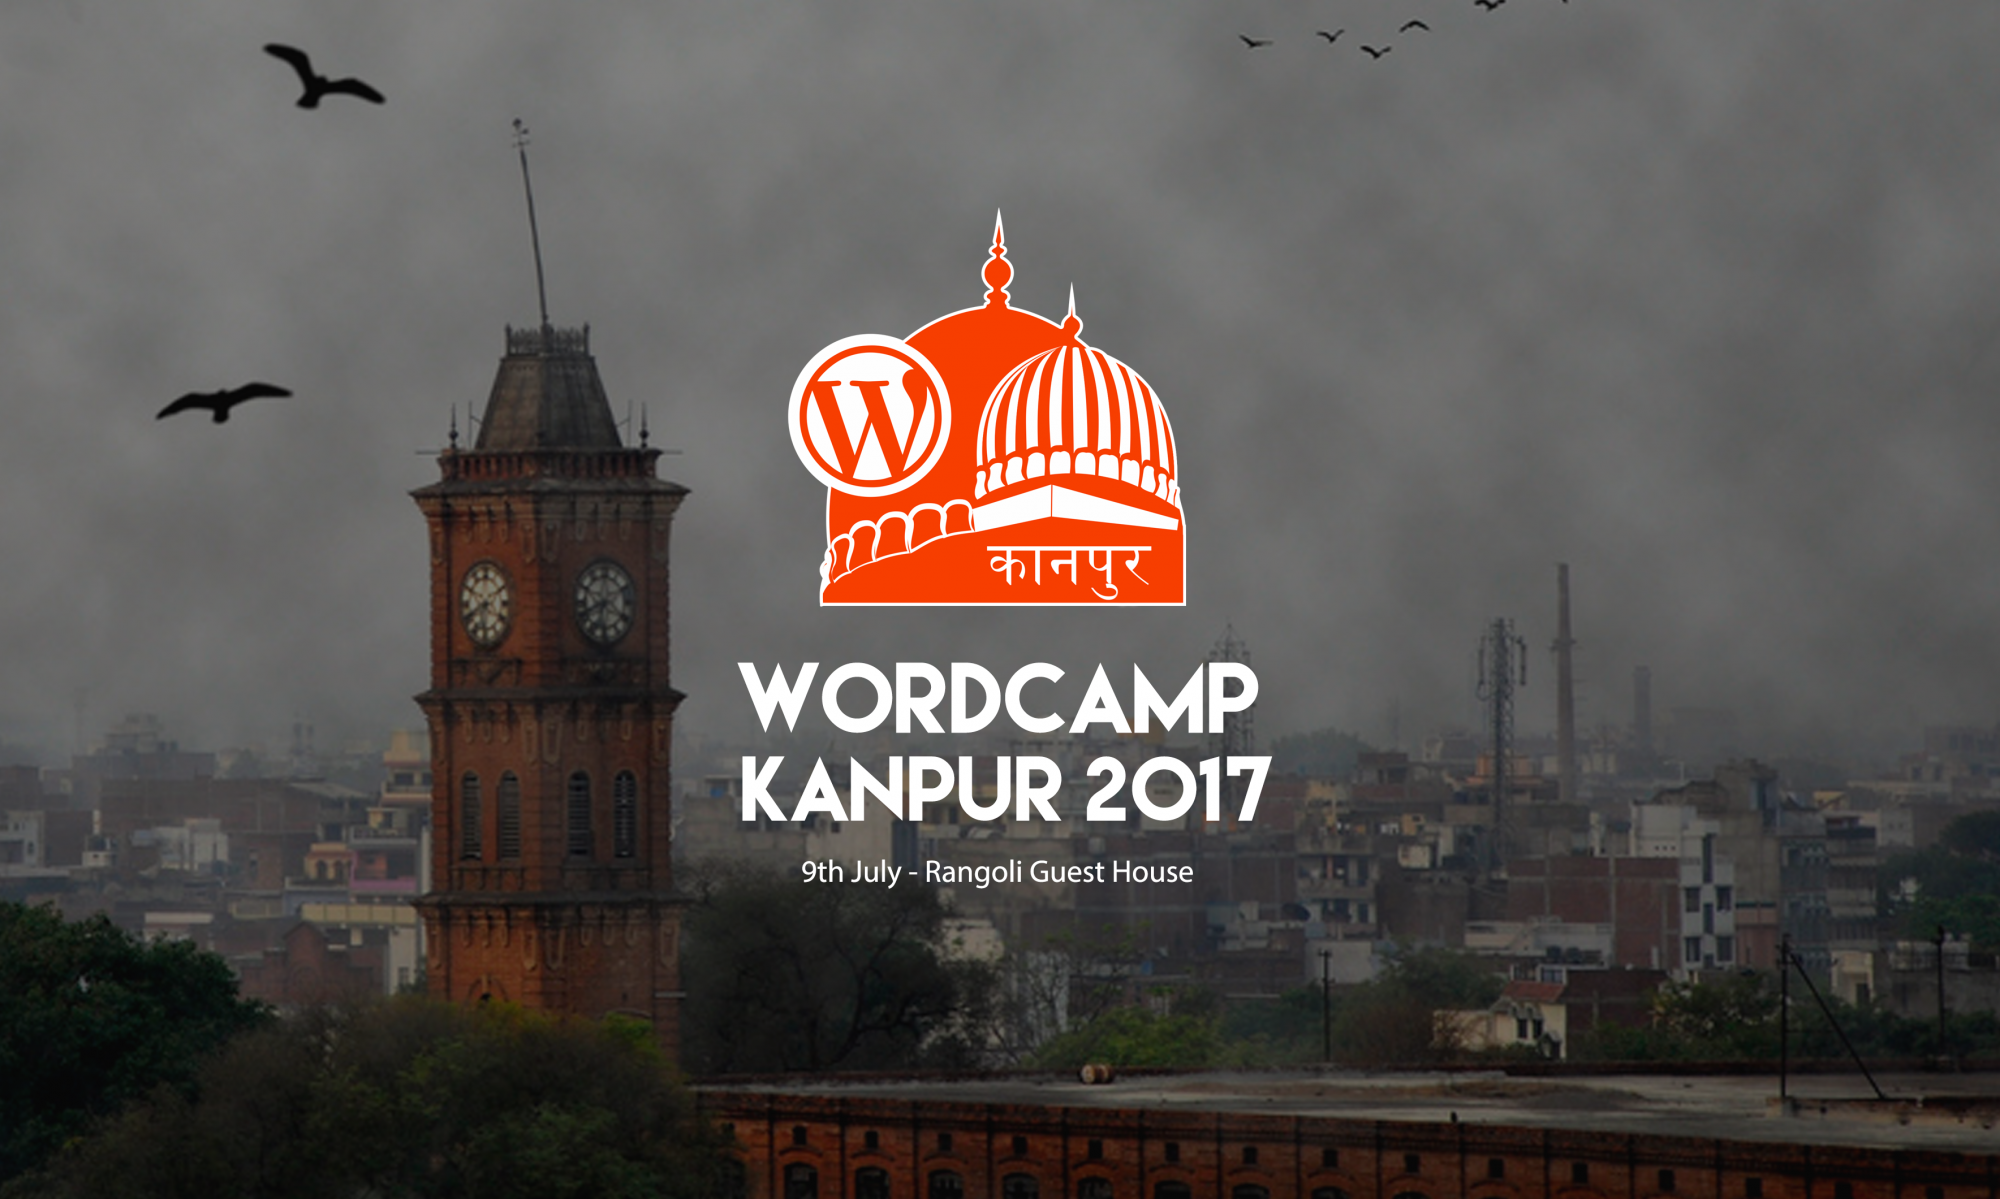 WordCamp Kanpur 2017